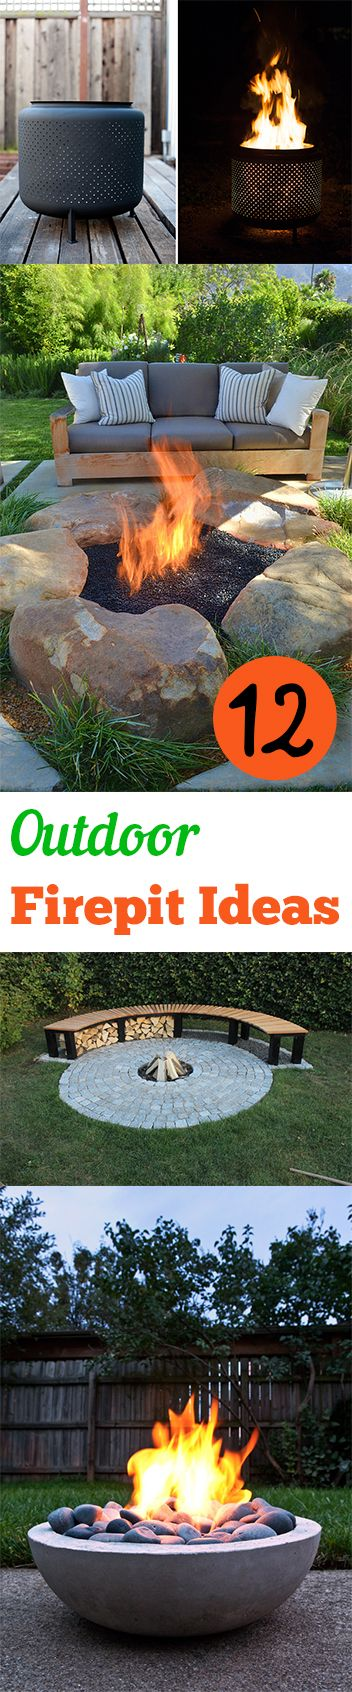 DIY Outdoor Firepit Ideas- Amazing Firepit ideas for your backyard or patio.